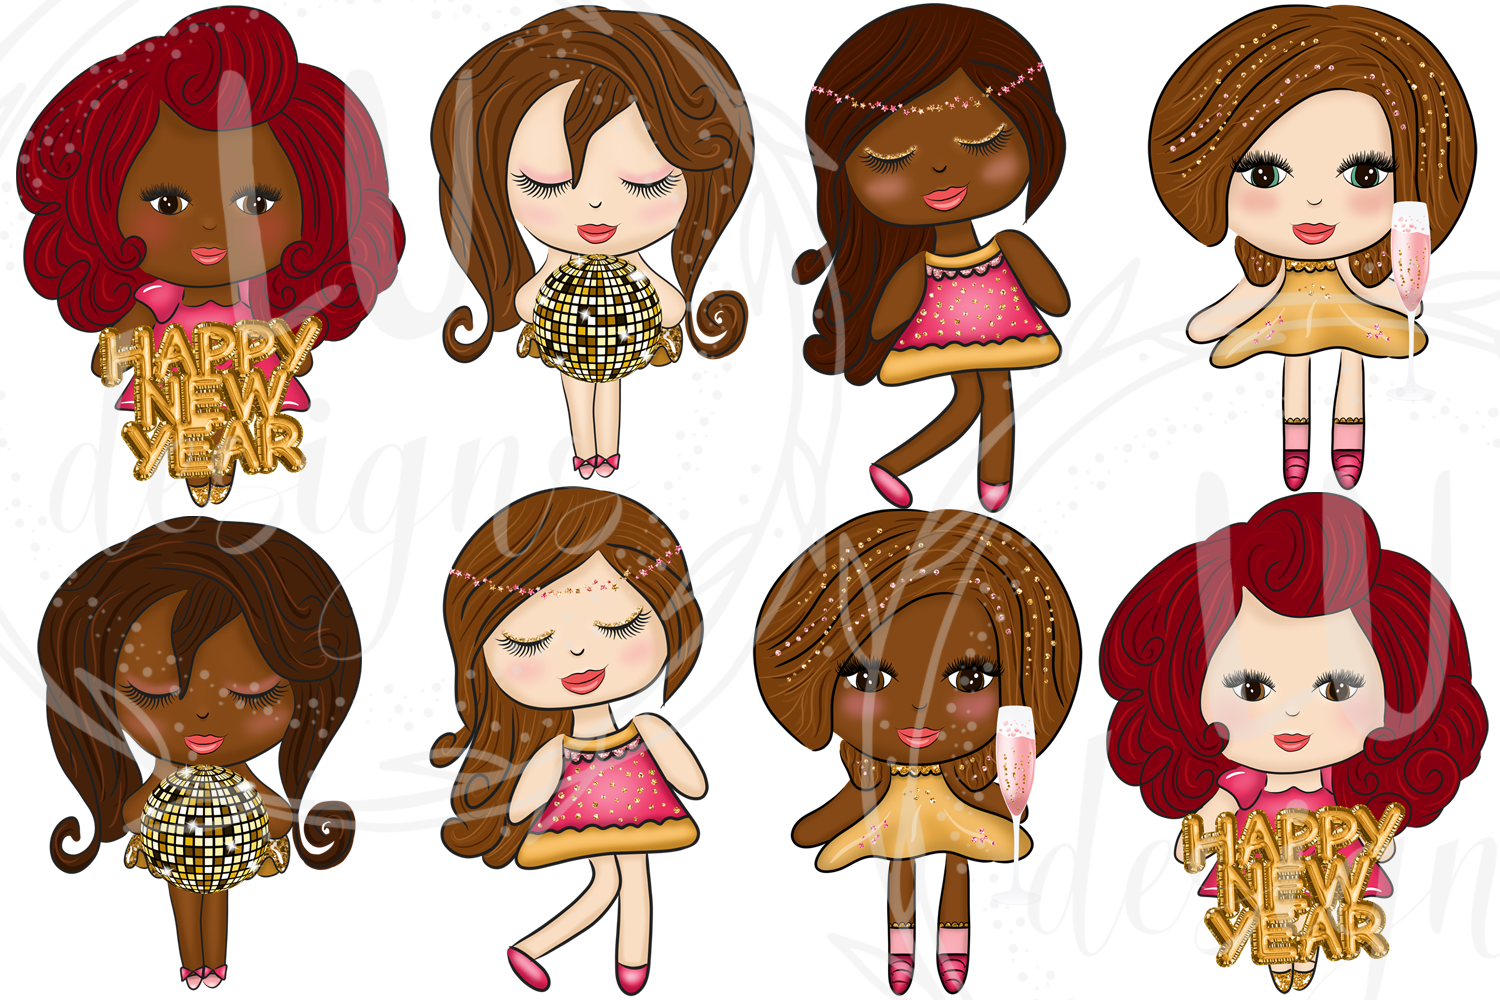 New Year Clipart, New Year Graphics, Party Cute Dolls example image 2